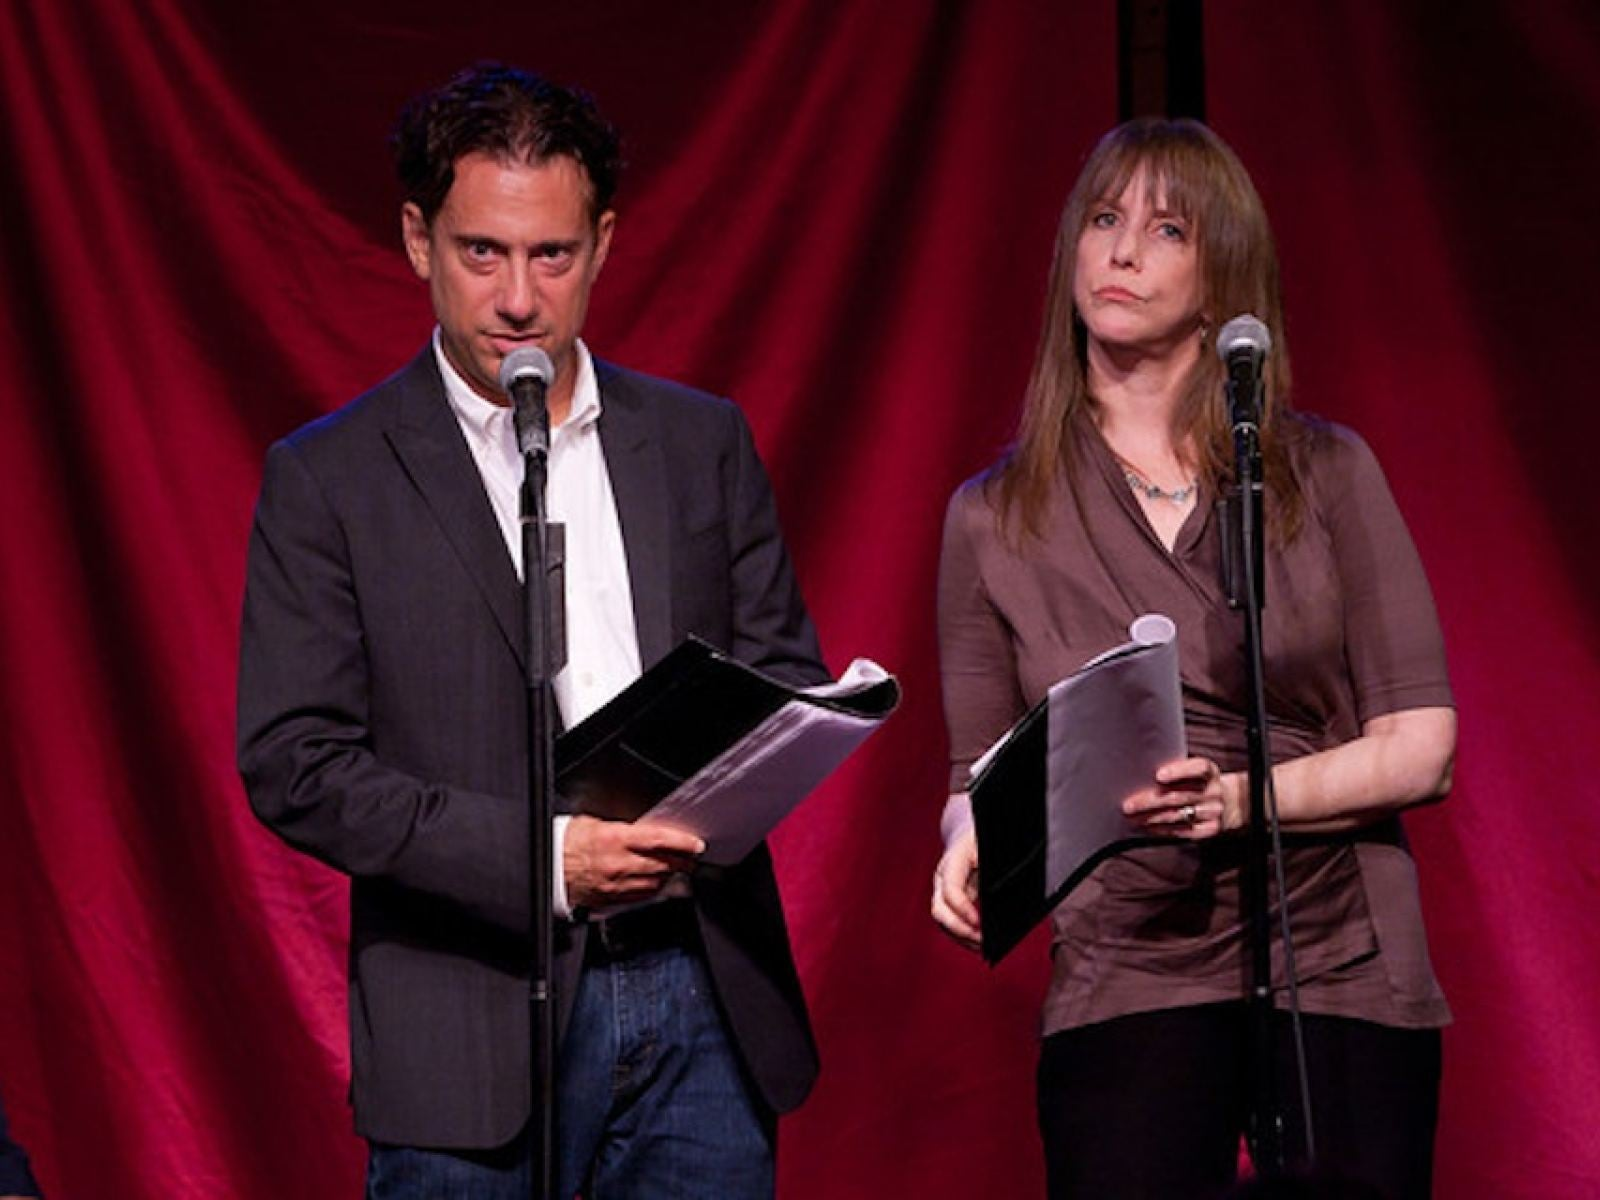 Depicted: Eugene Pack, Laraine Newman. Photo credit: Andrew Werner.